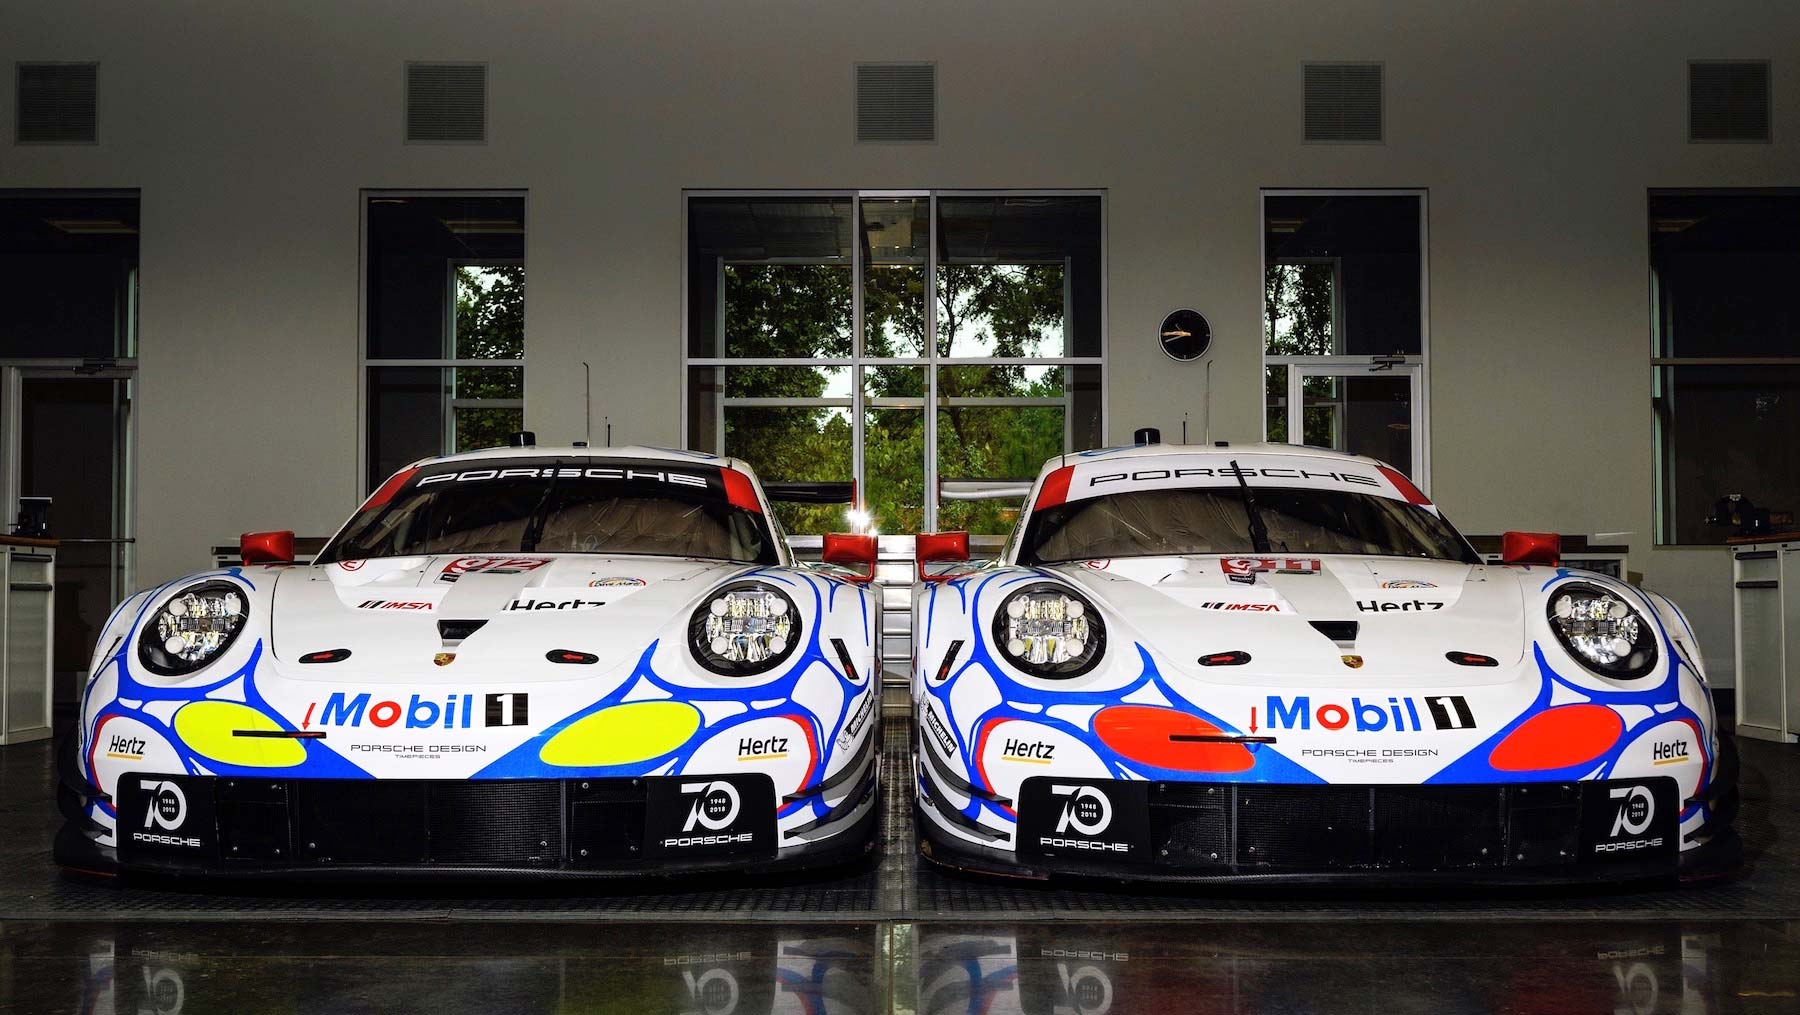 Porsche revives the 90s with another retro racing livery for